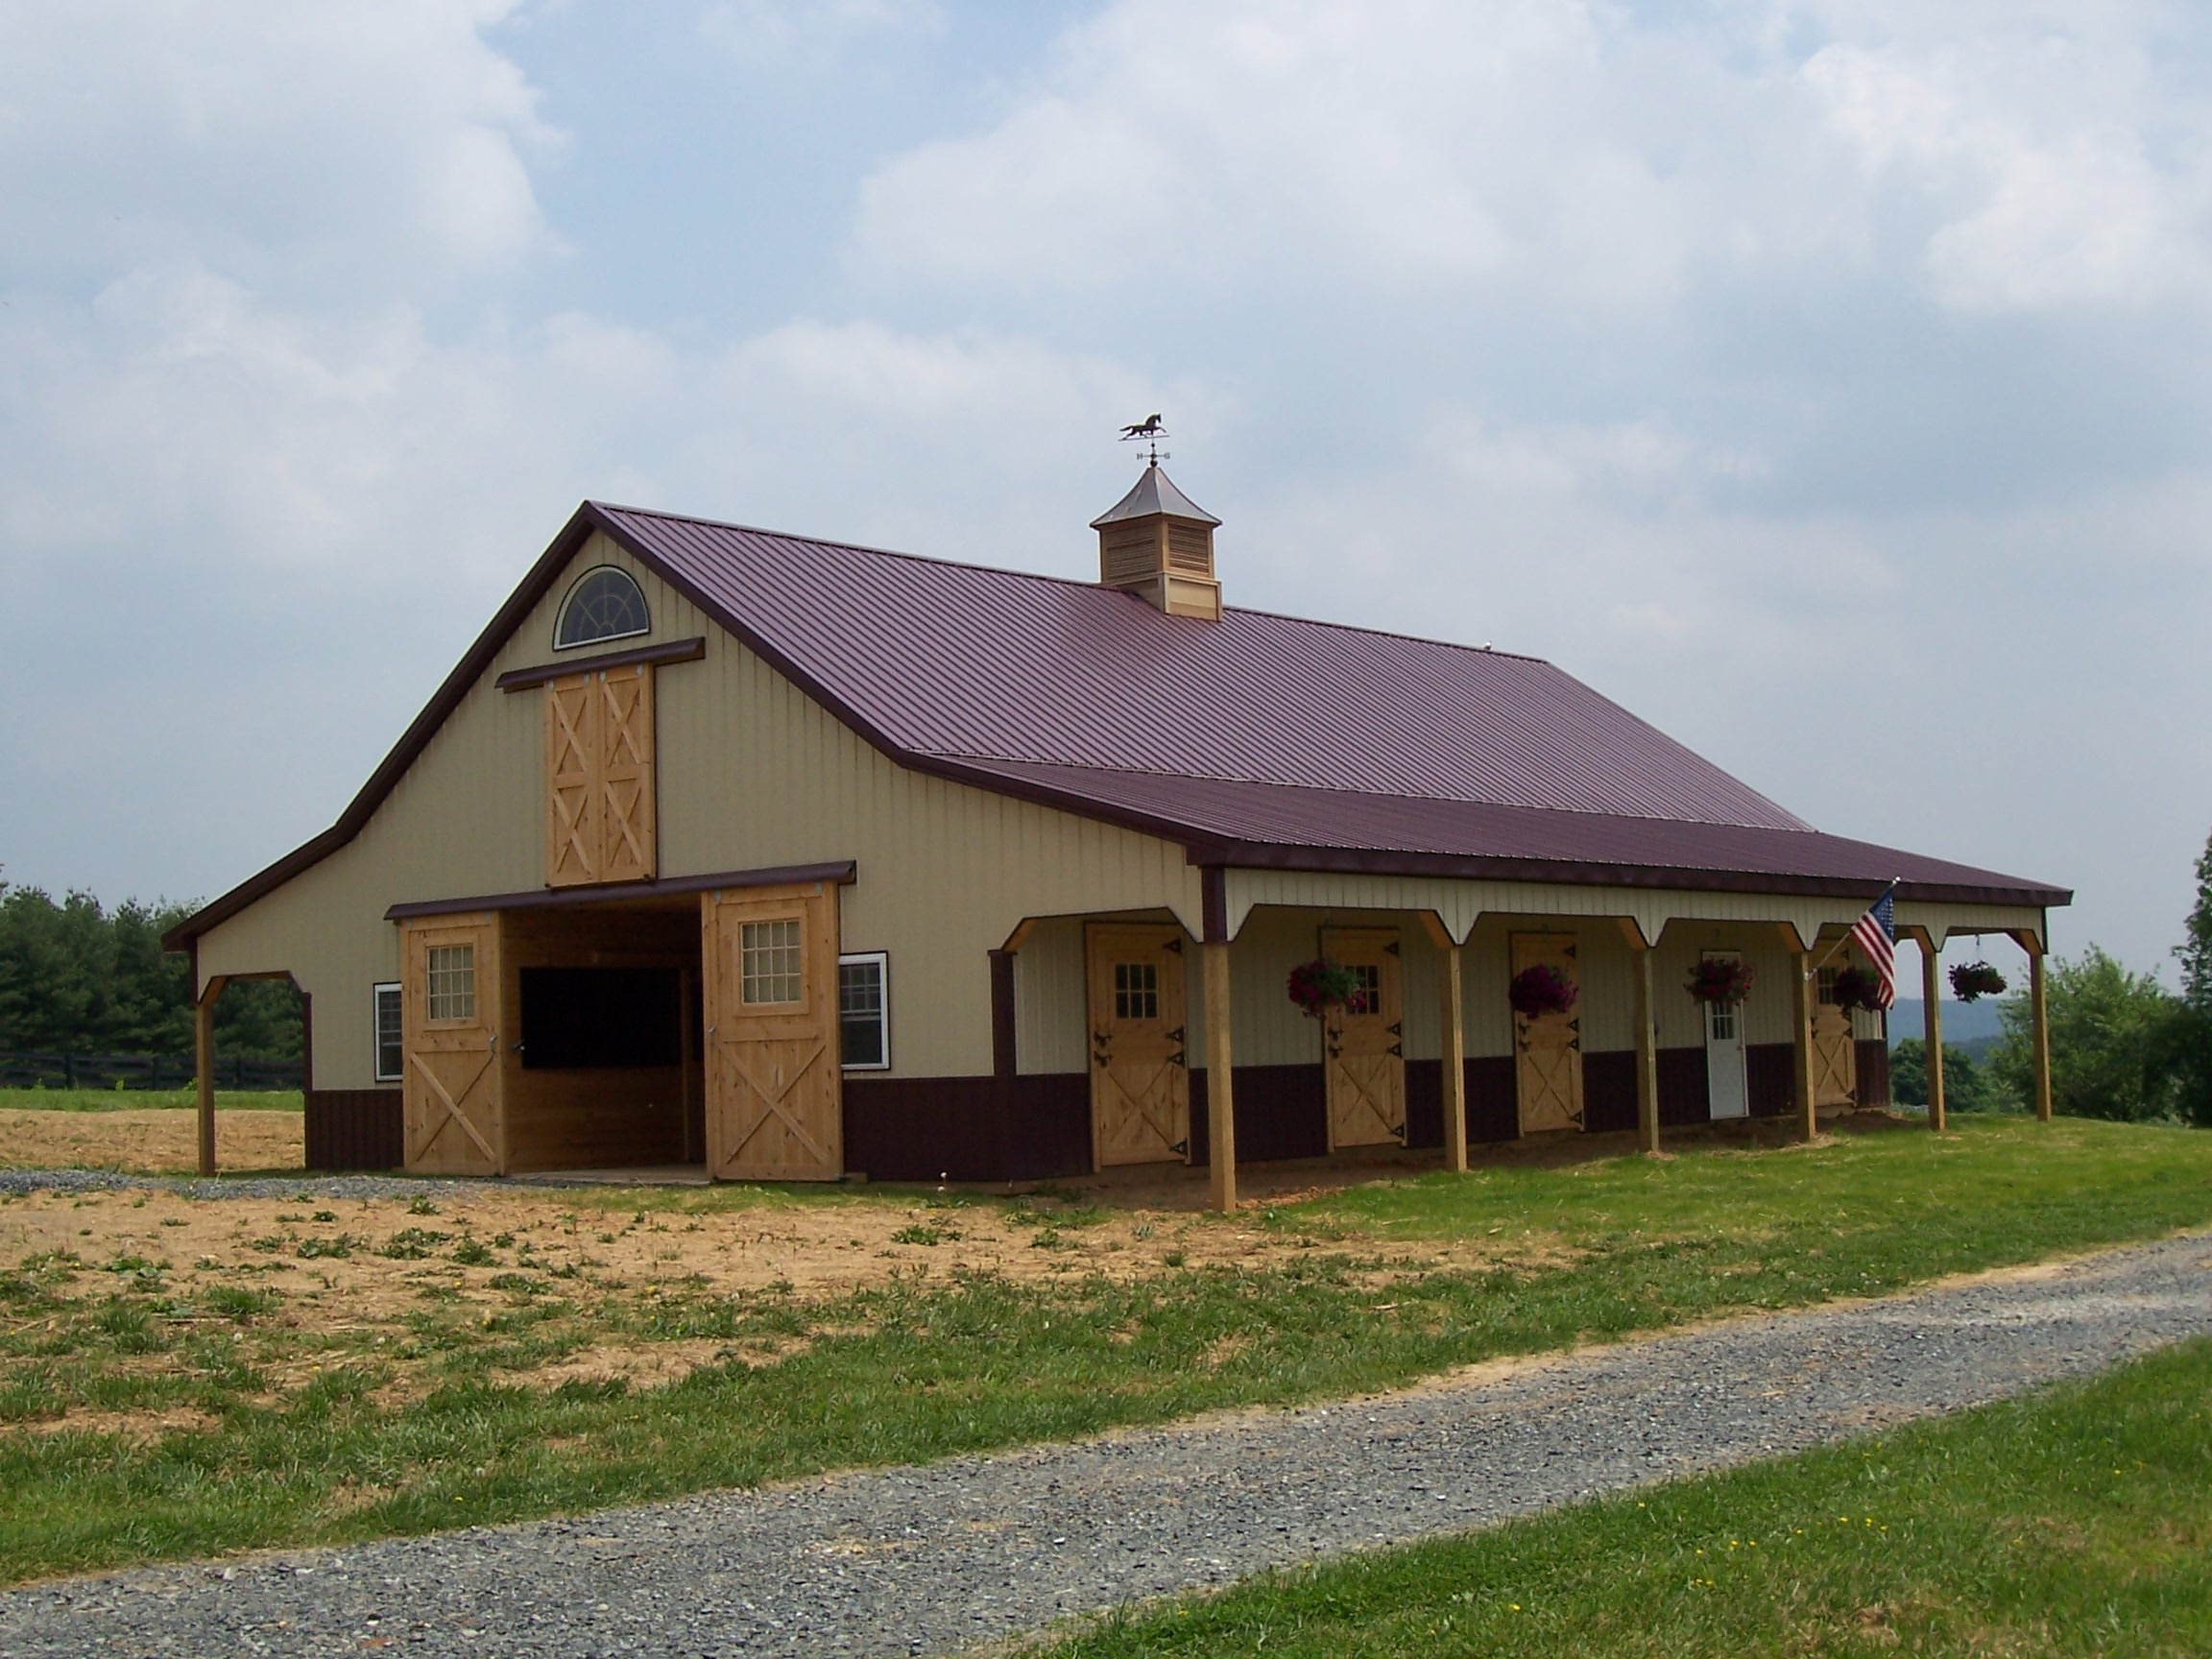 Specialized New Home Construction By Amish Builders: Amish Builders | Cabin Kits Michigan | Pre Built Sheds Ohio